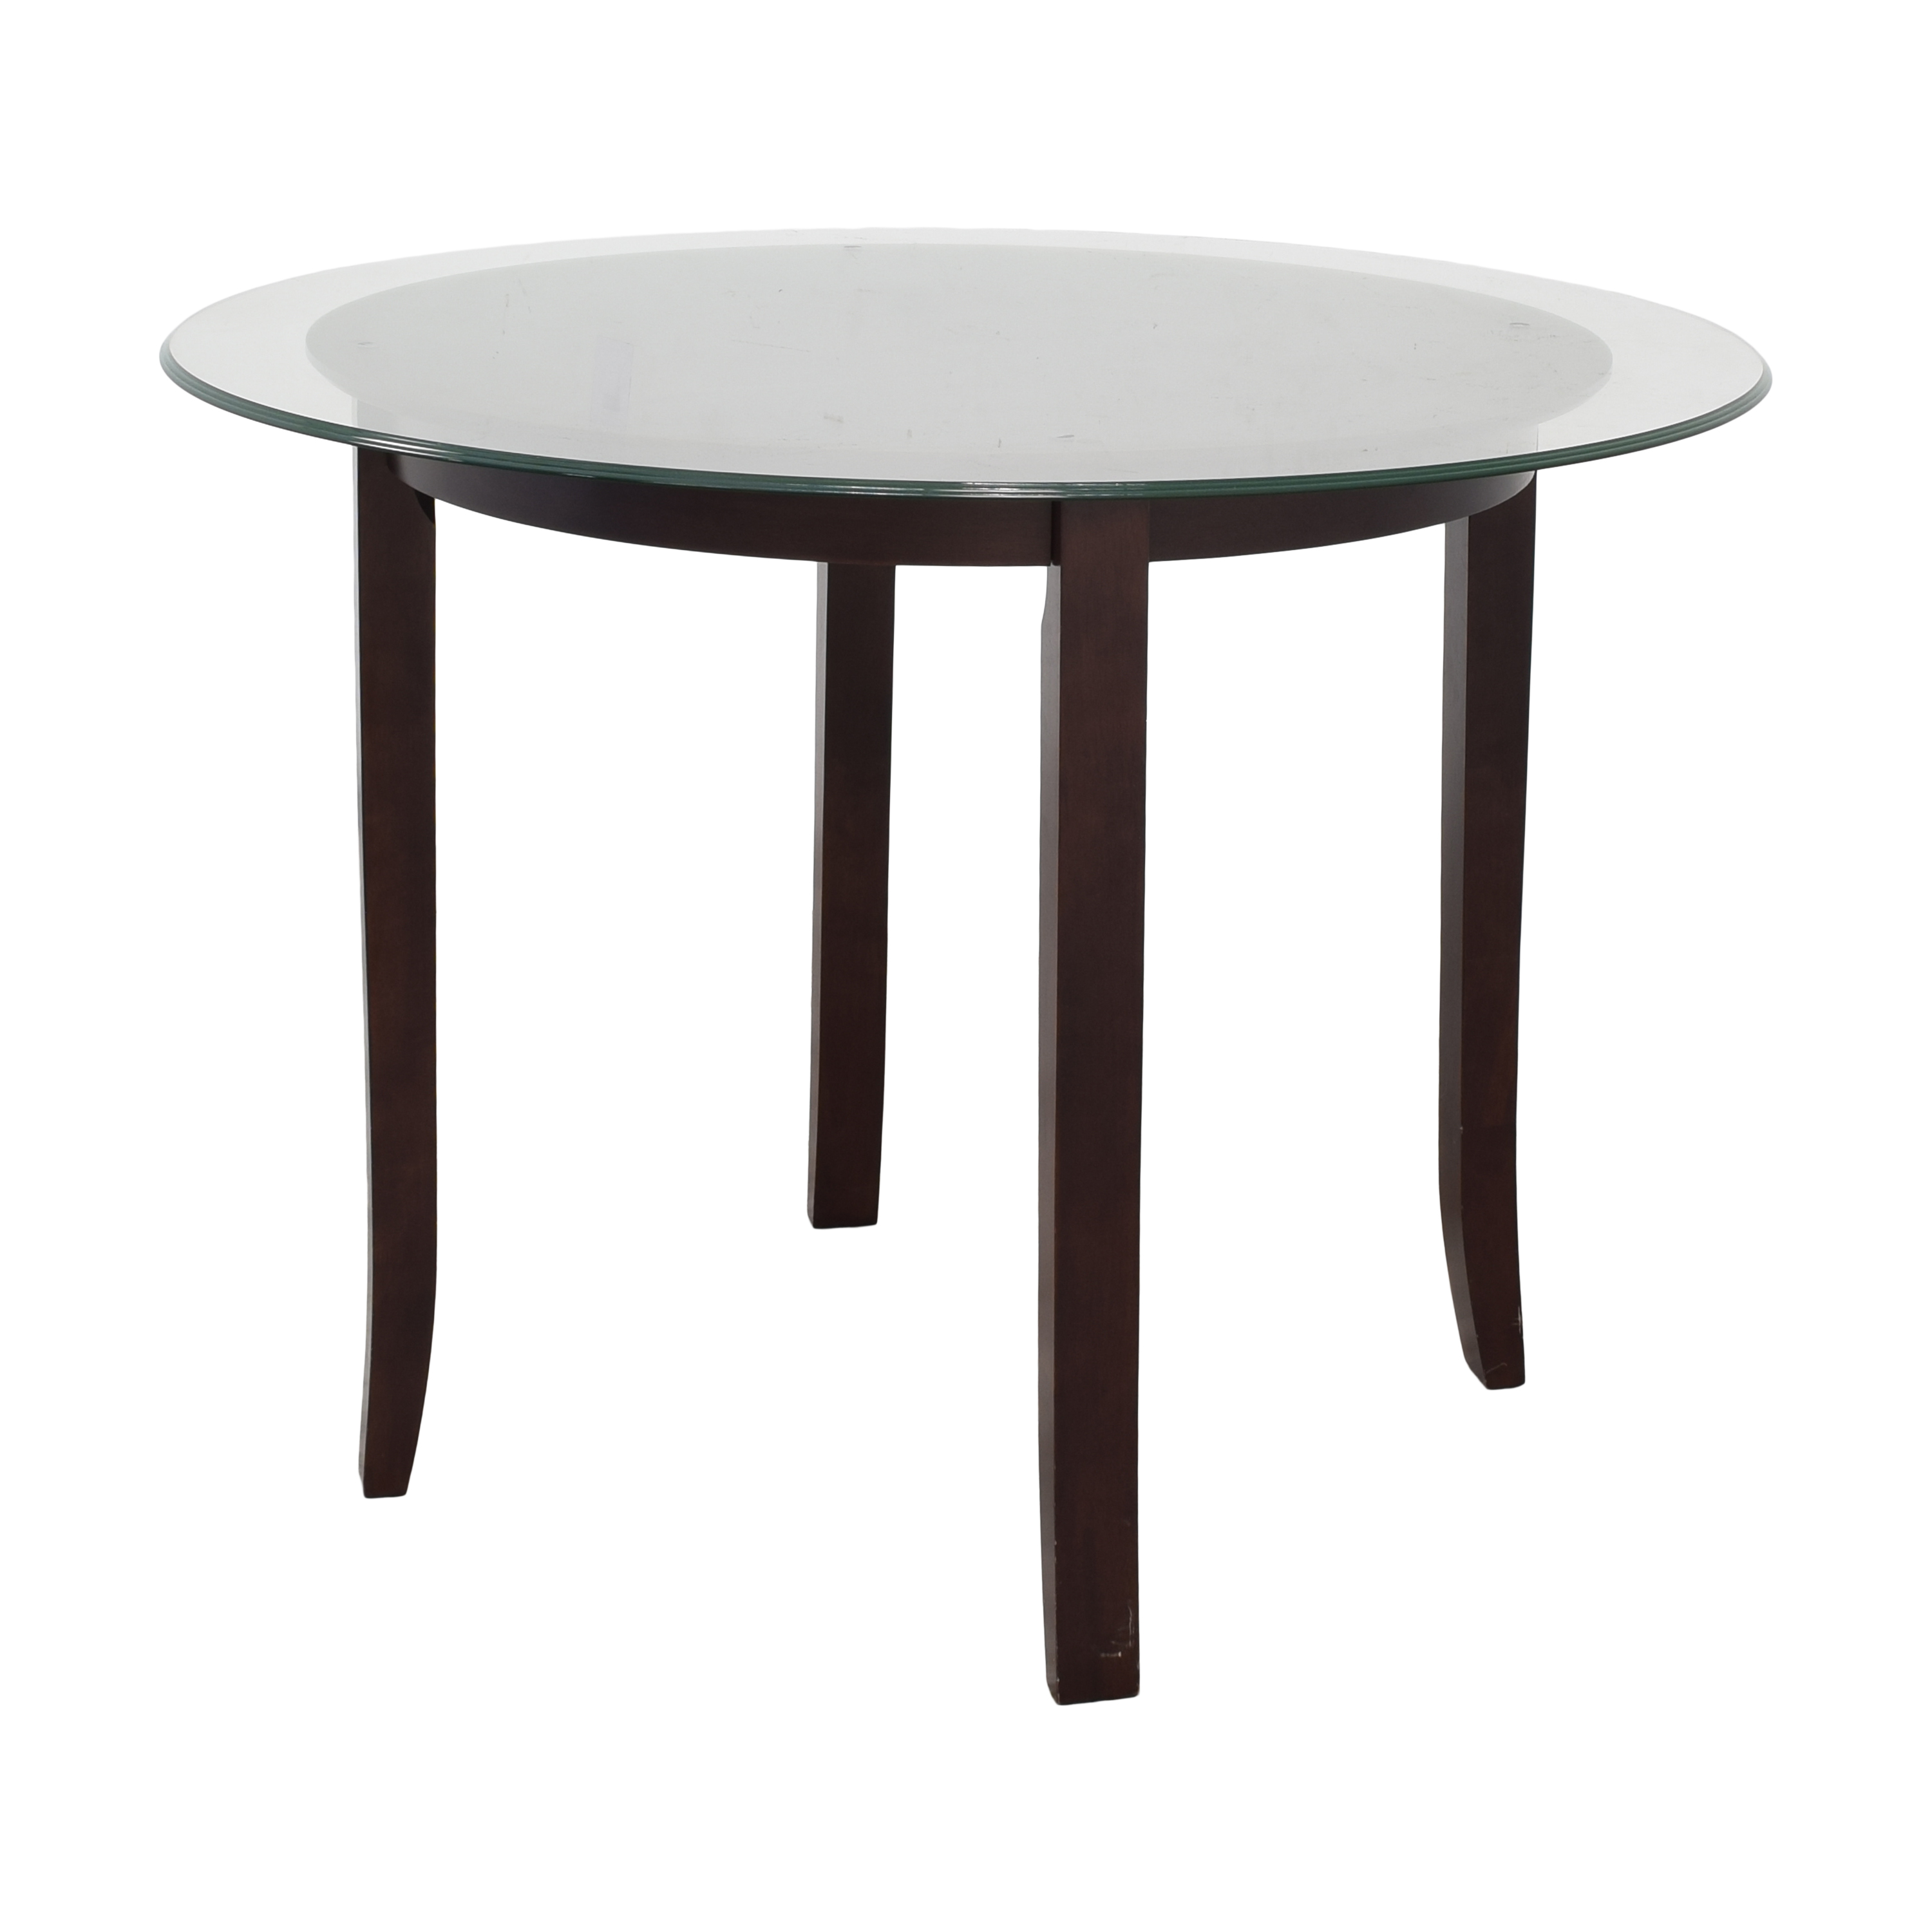 buy Rooms To Go Rooms To Go Keefer High Top Dining Room Table online